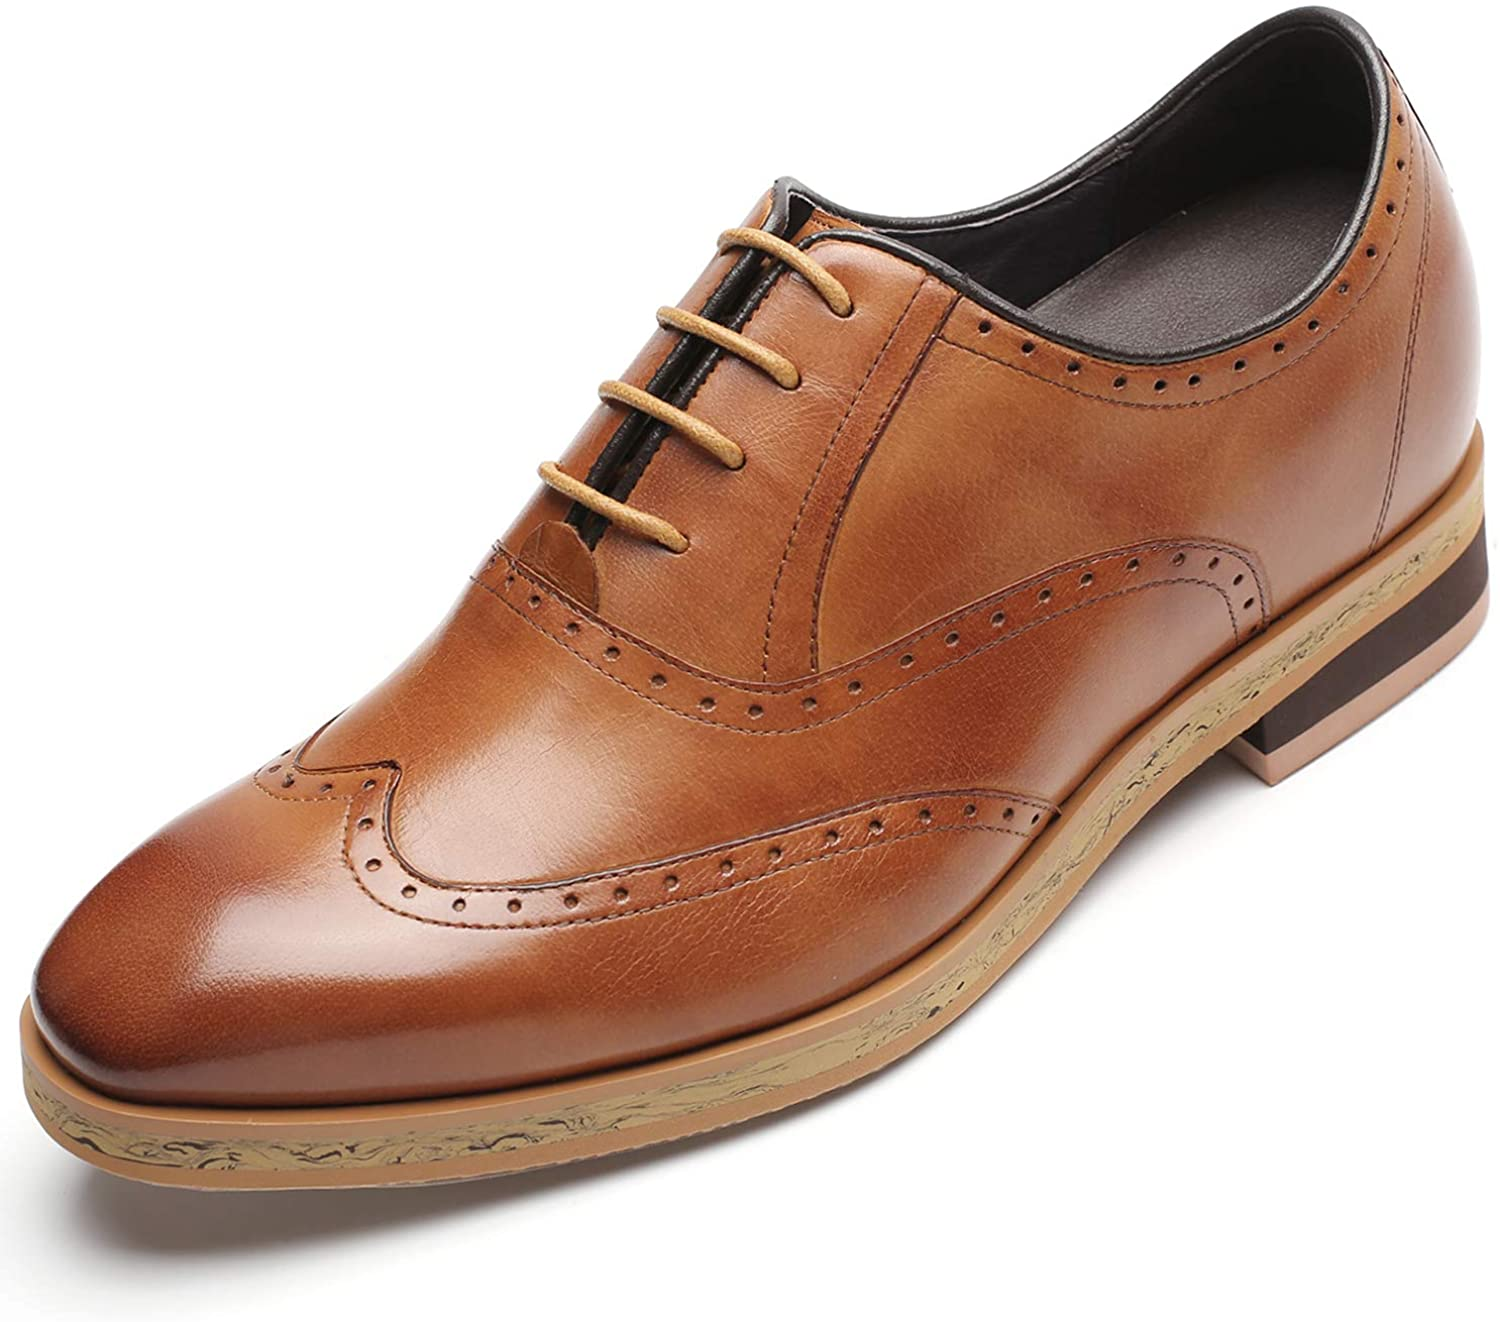 CHAMARIPA Men's Height Increasing Elevator Shoes Leather Dress Shoes Invisible Elevated Oxfords 2.76 Inches Taller H91241H051D